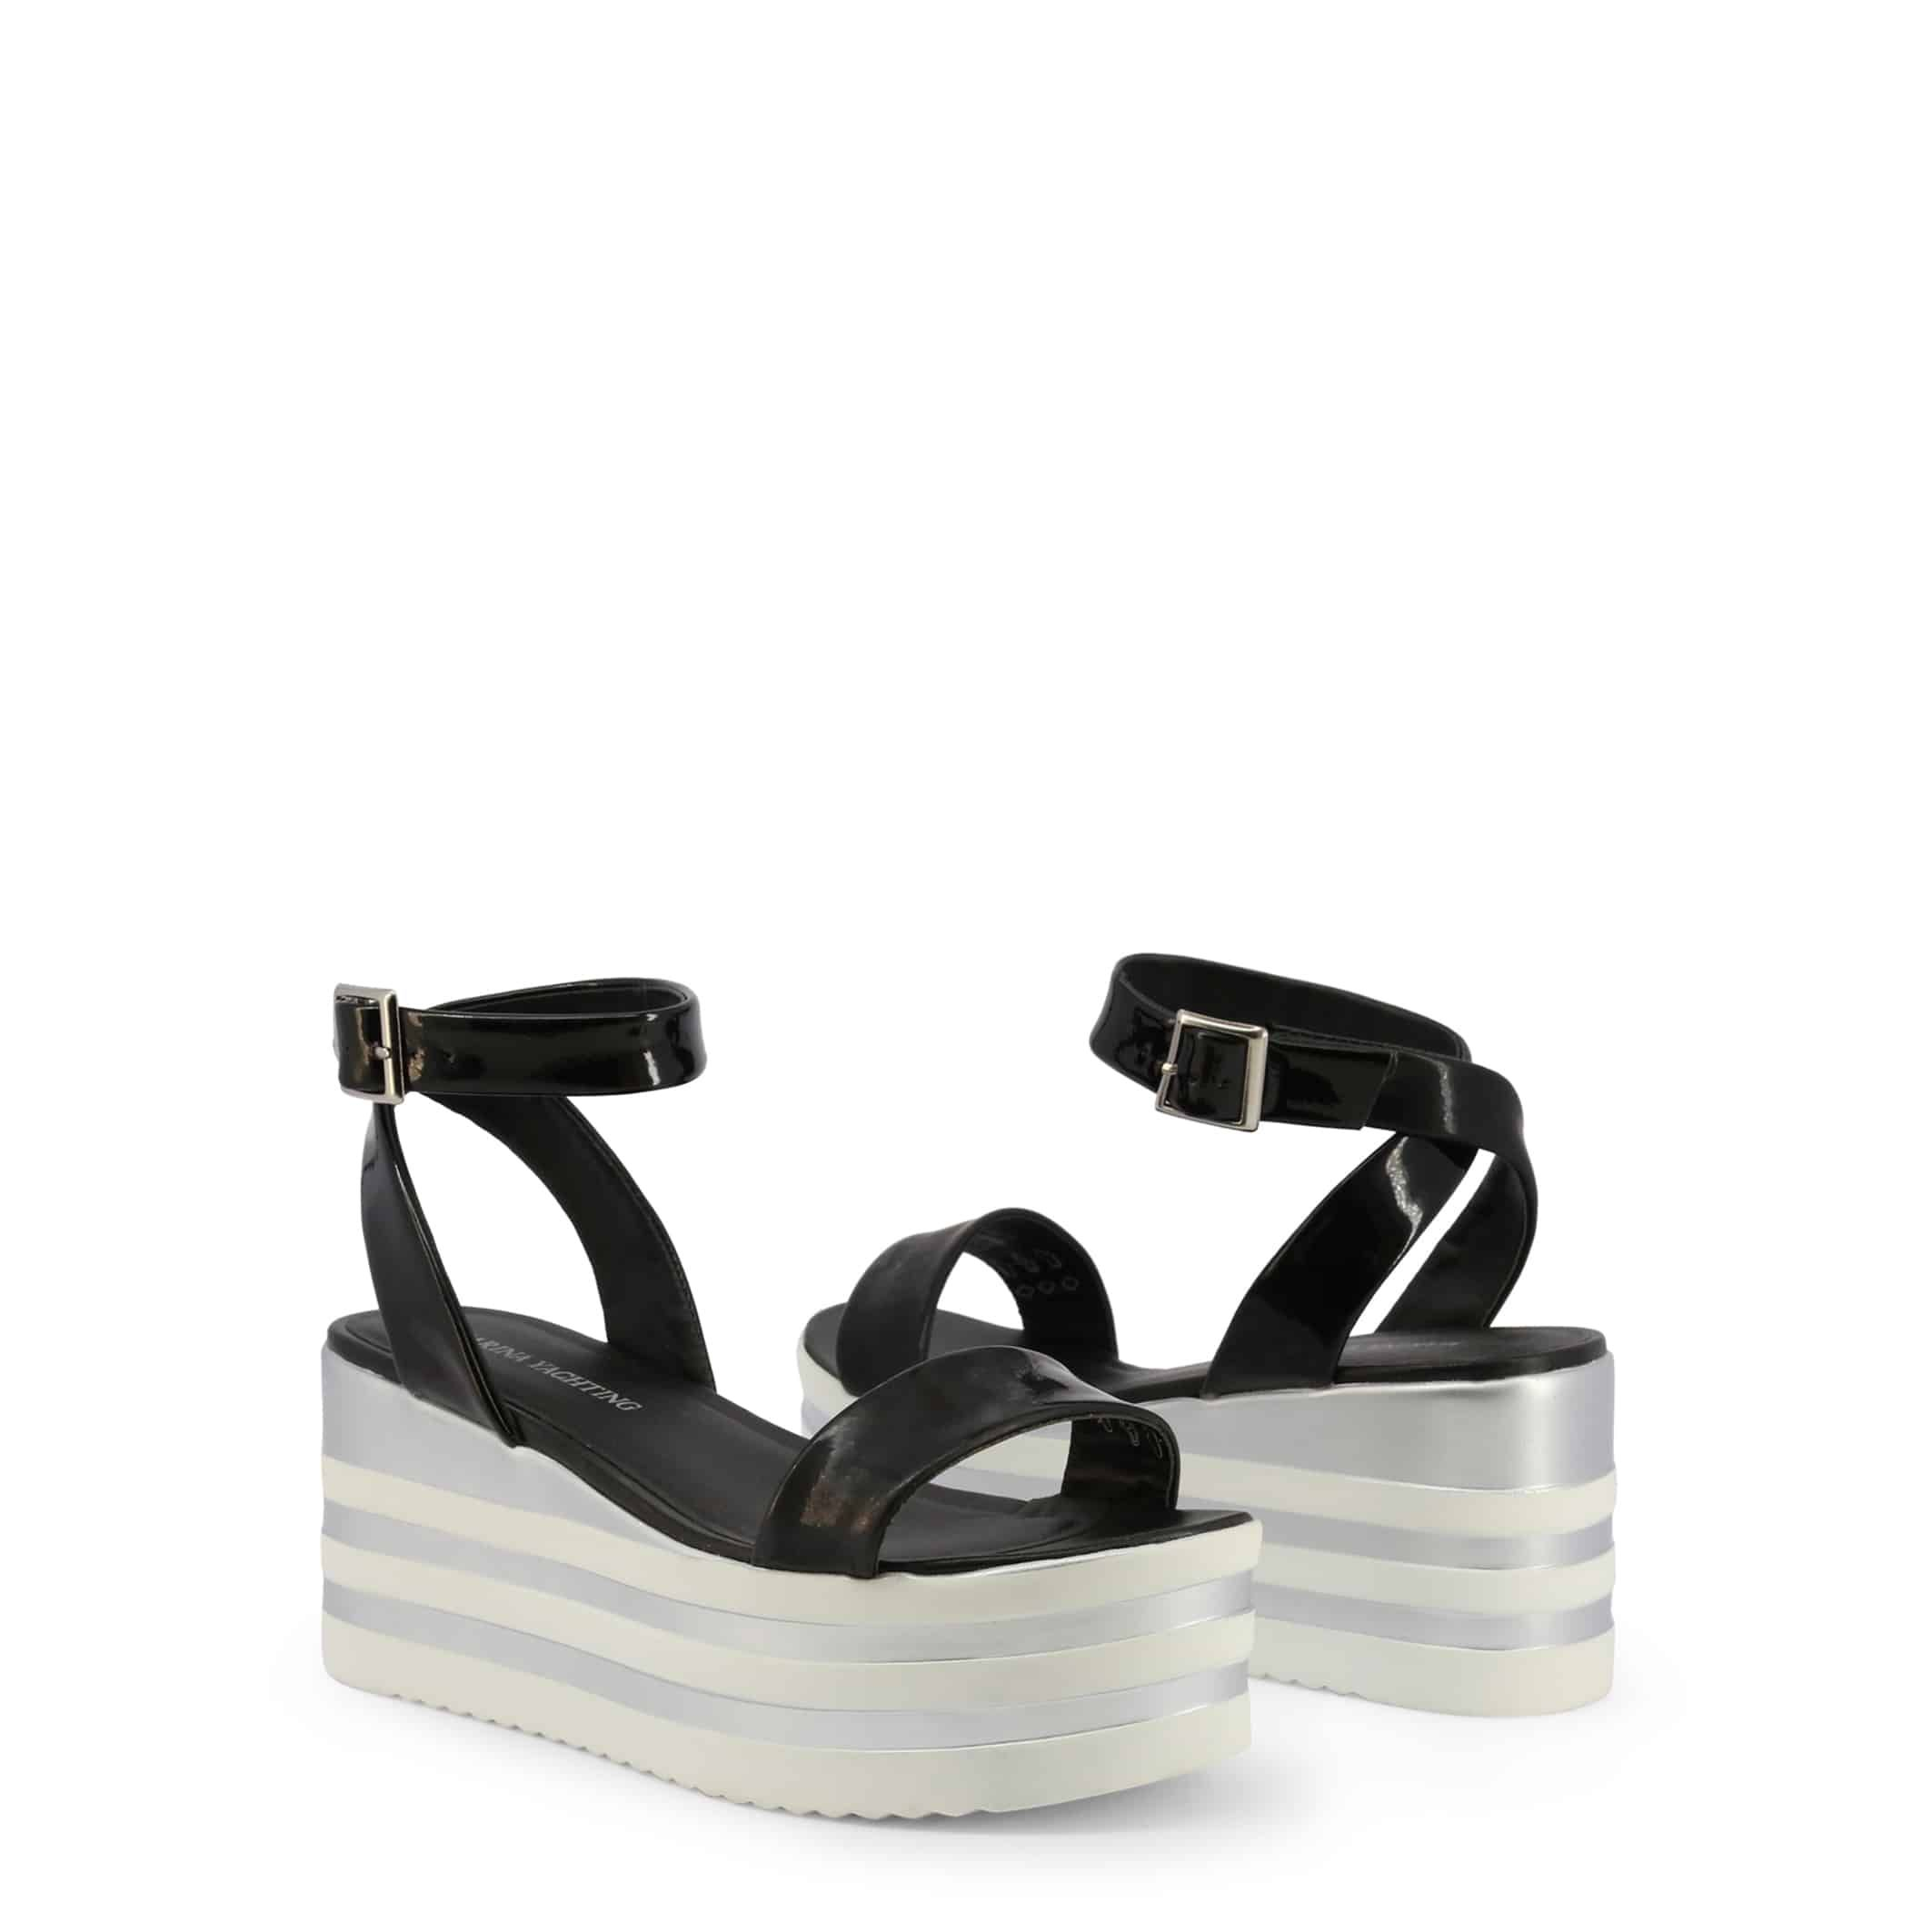 Marina Yachting - MANILLE181W6111400 | You Fashion Outlet